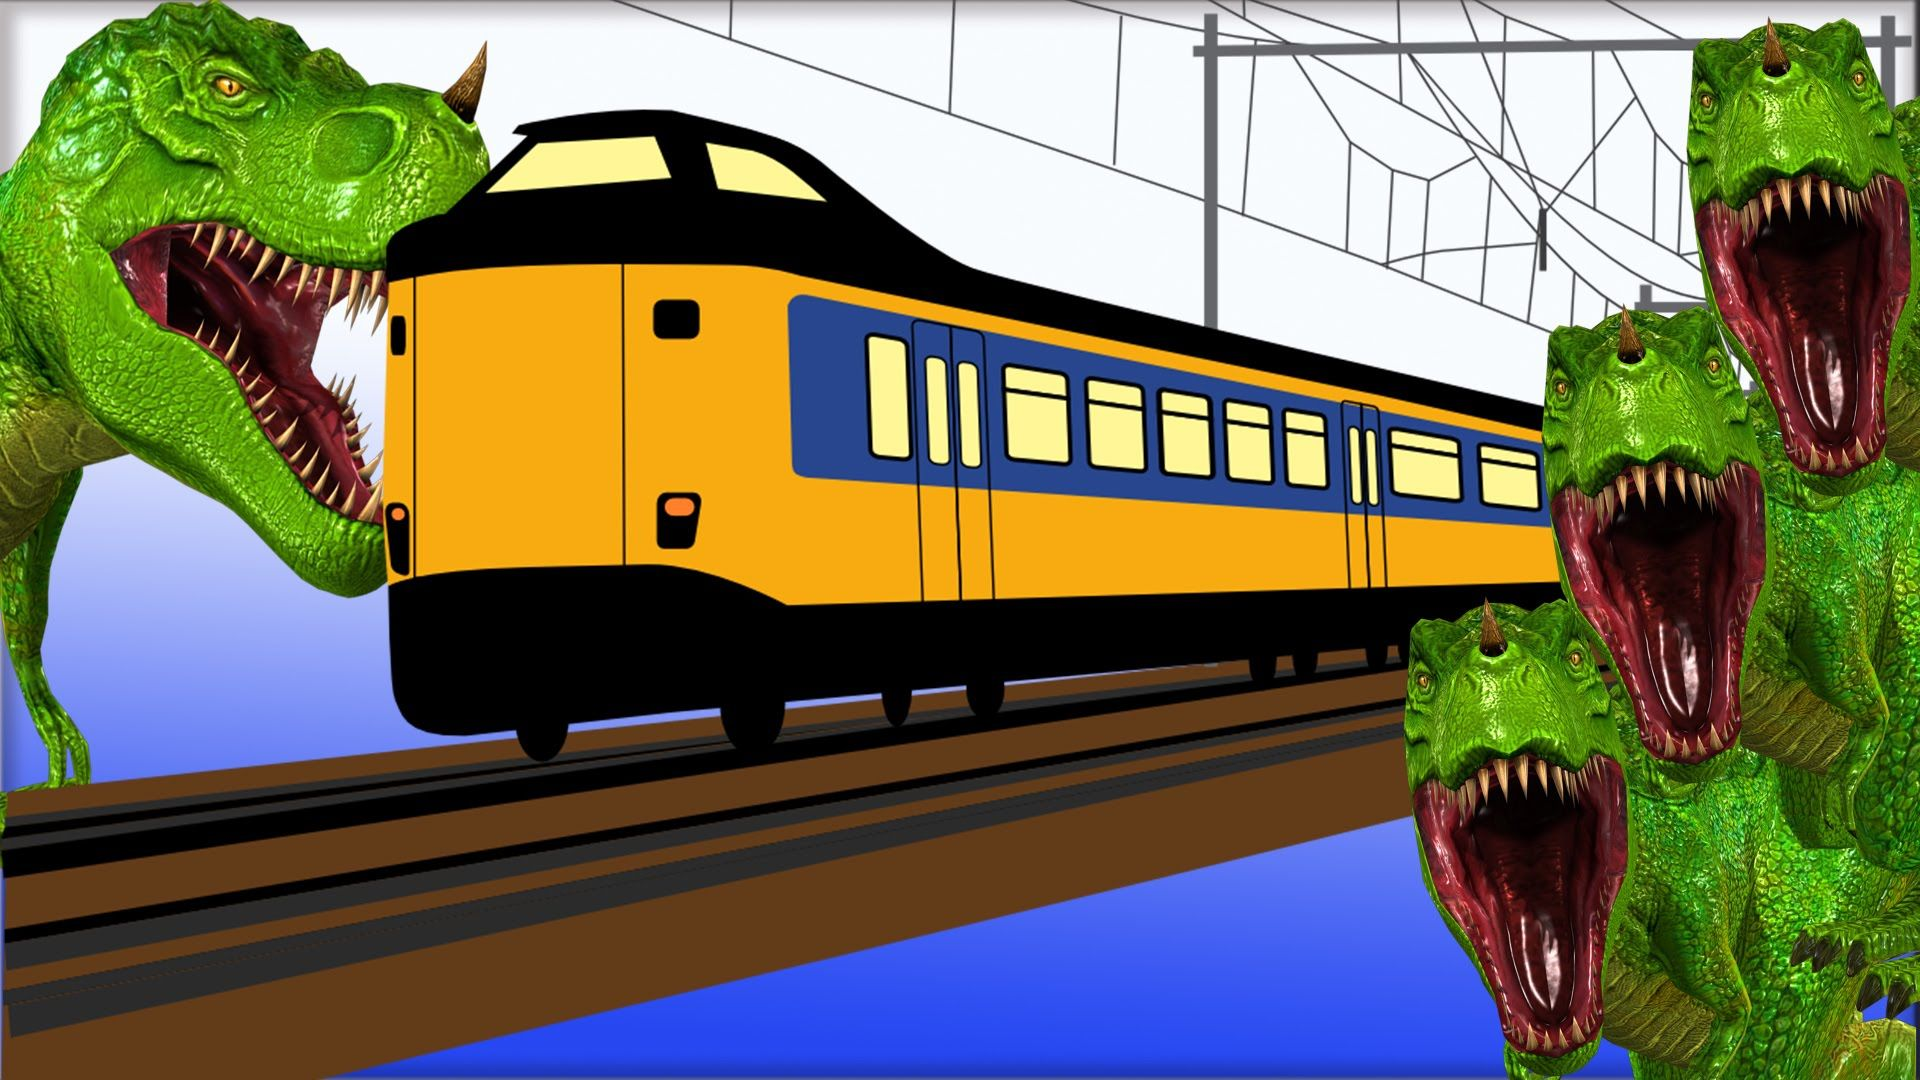 Finger family rhyme dinosaur stops the train by throwing